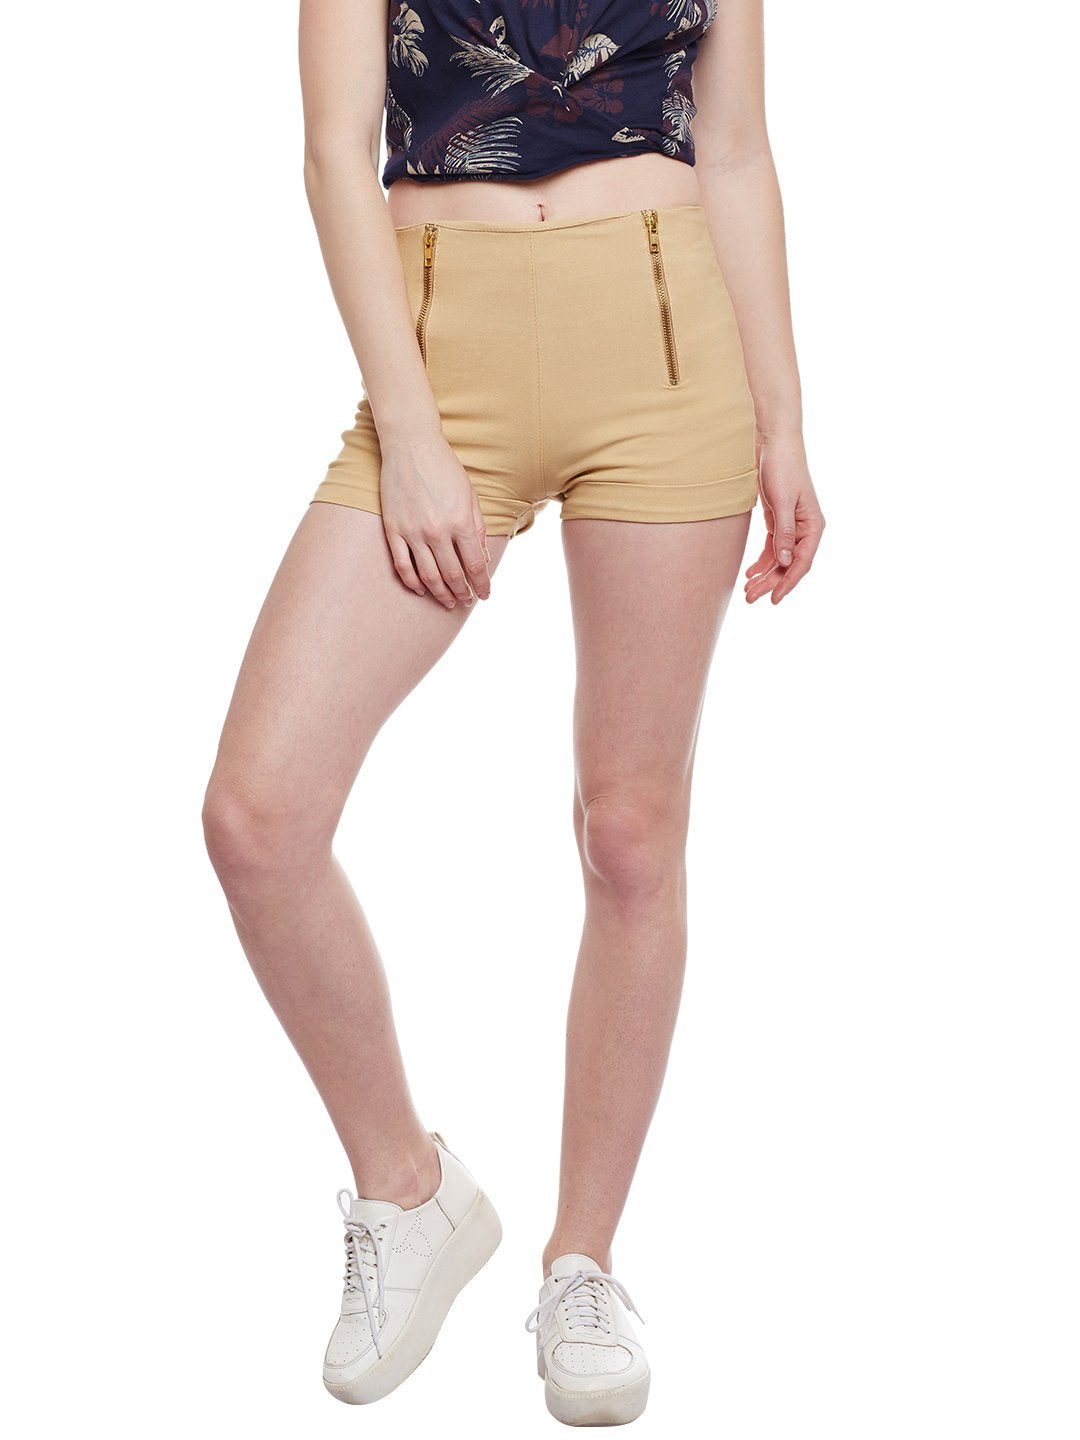 Castle Fawn Double Zip Cotton Spandex Shorts